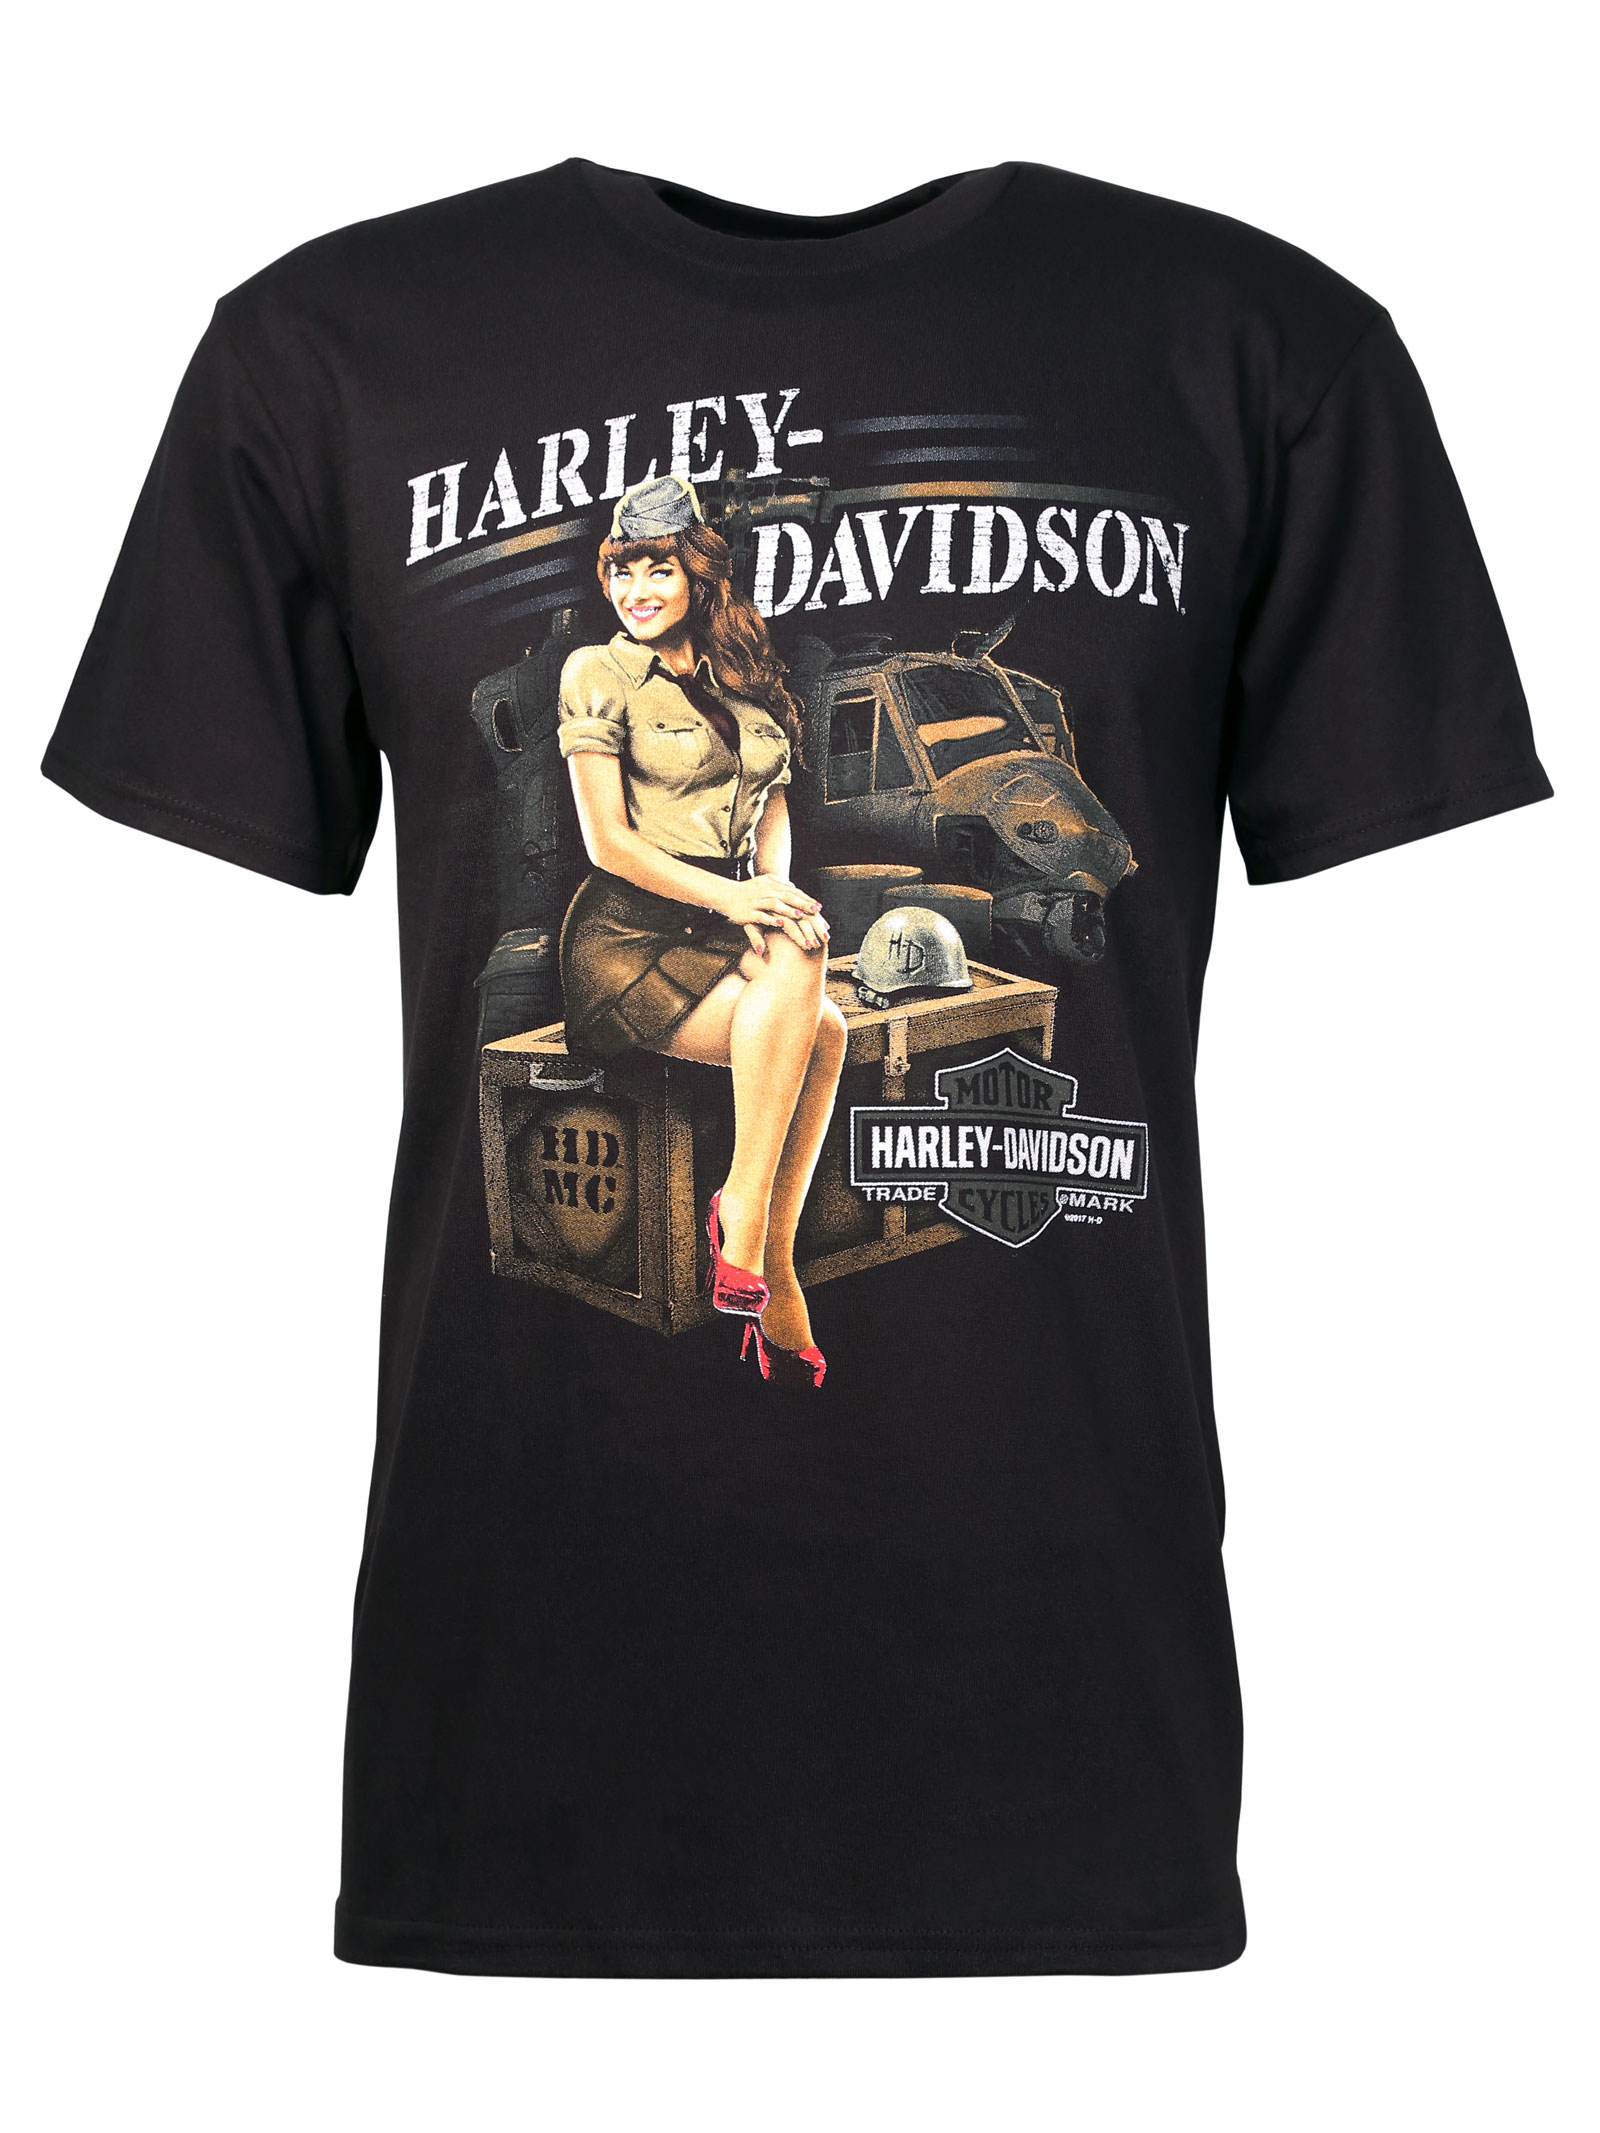 harley davidson t shirt warrior heritage at thunderbike shop. Black Bedroom Furniture Sets. Home Design Ideas